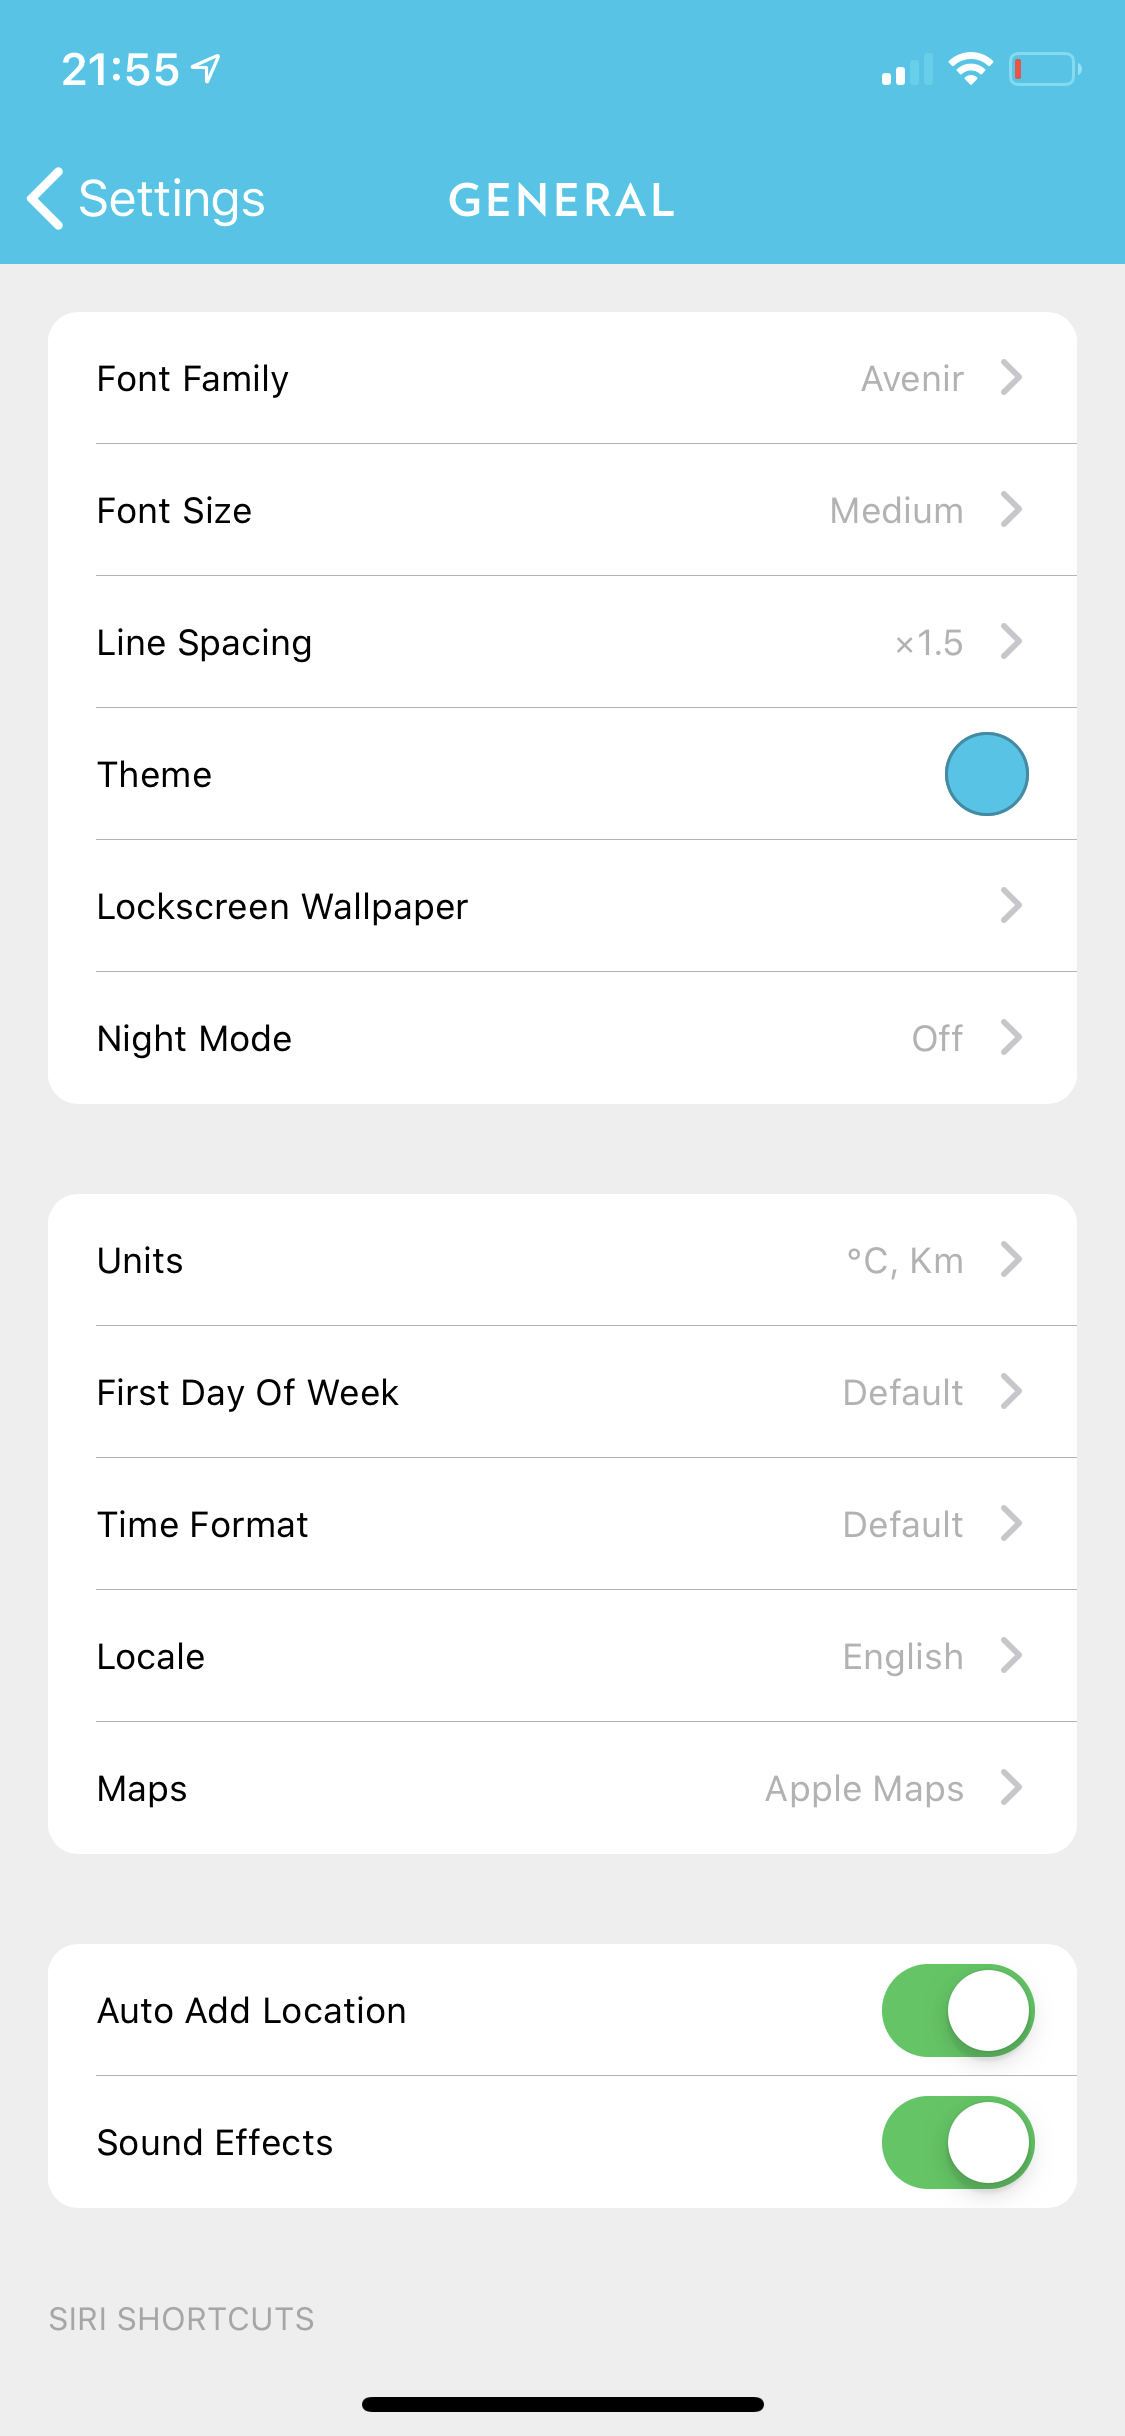 General settings screenshot